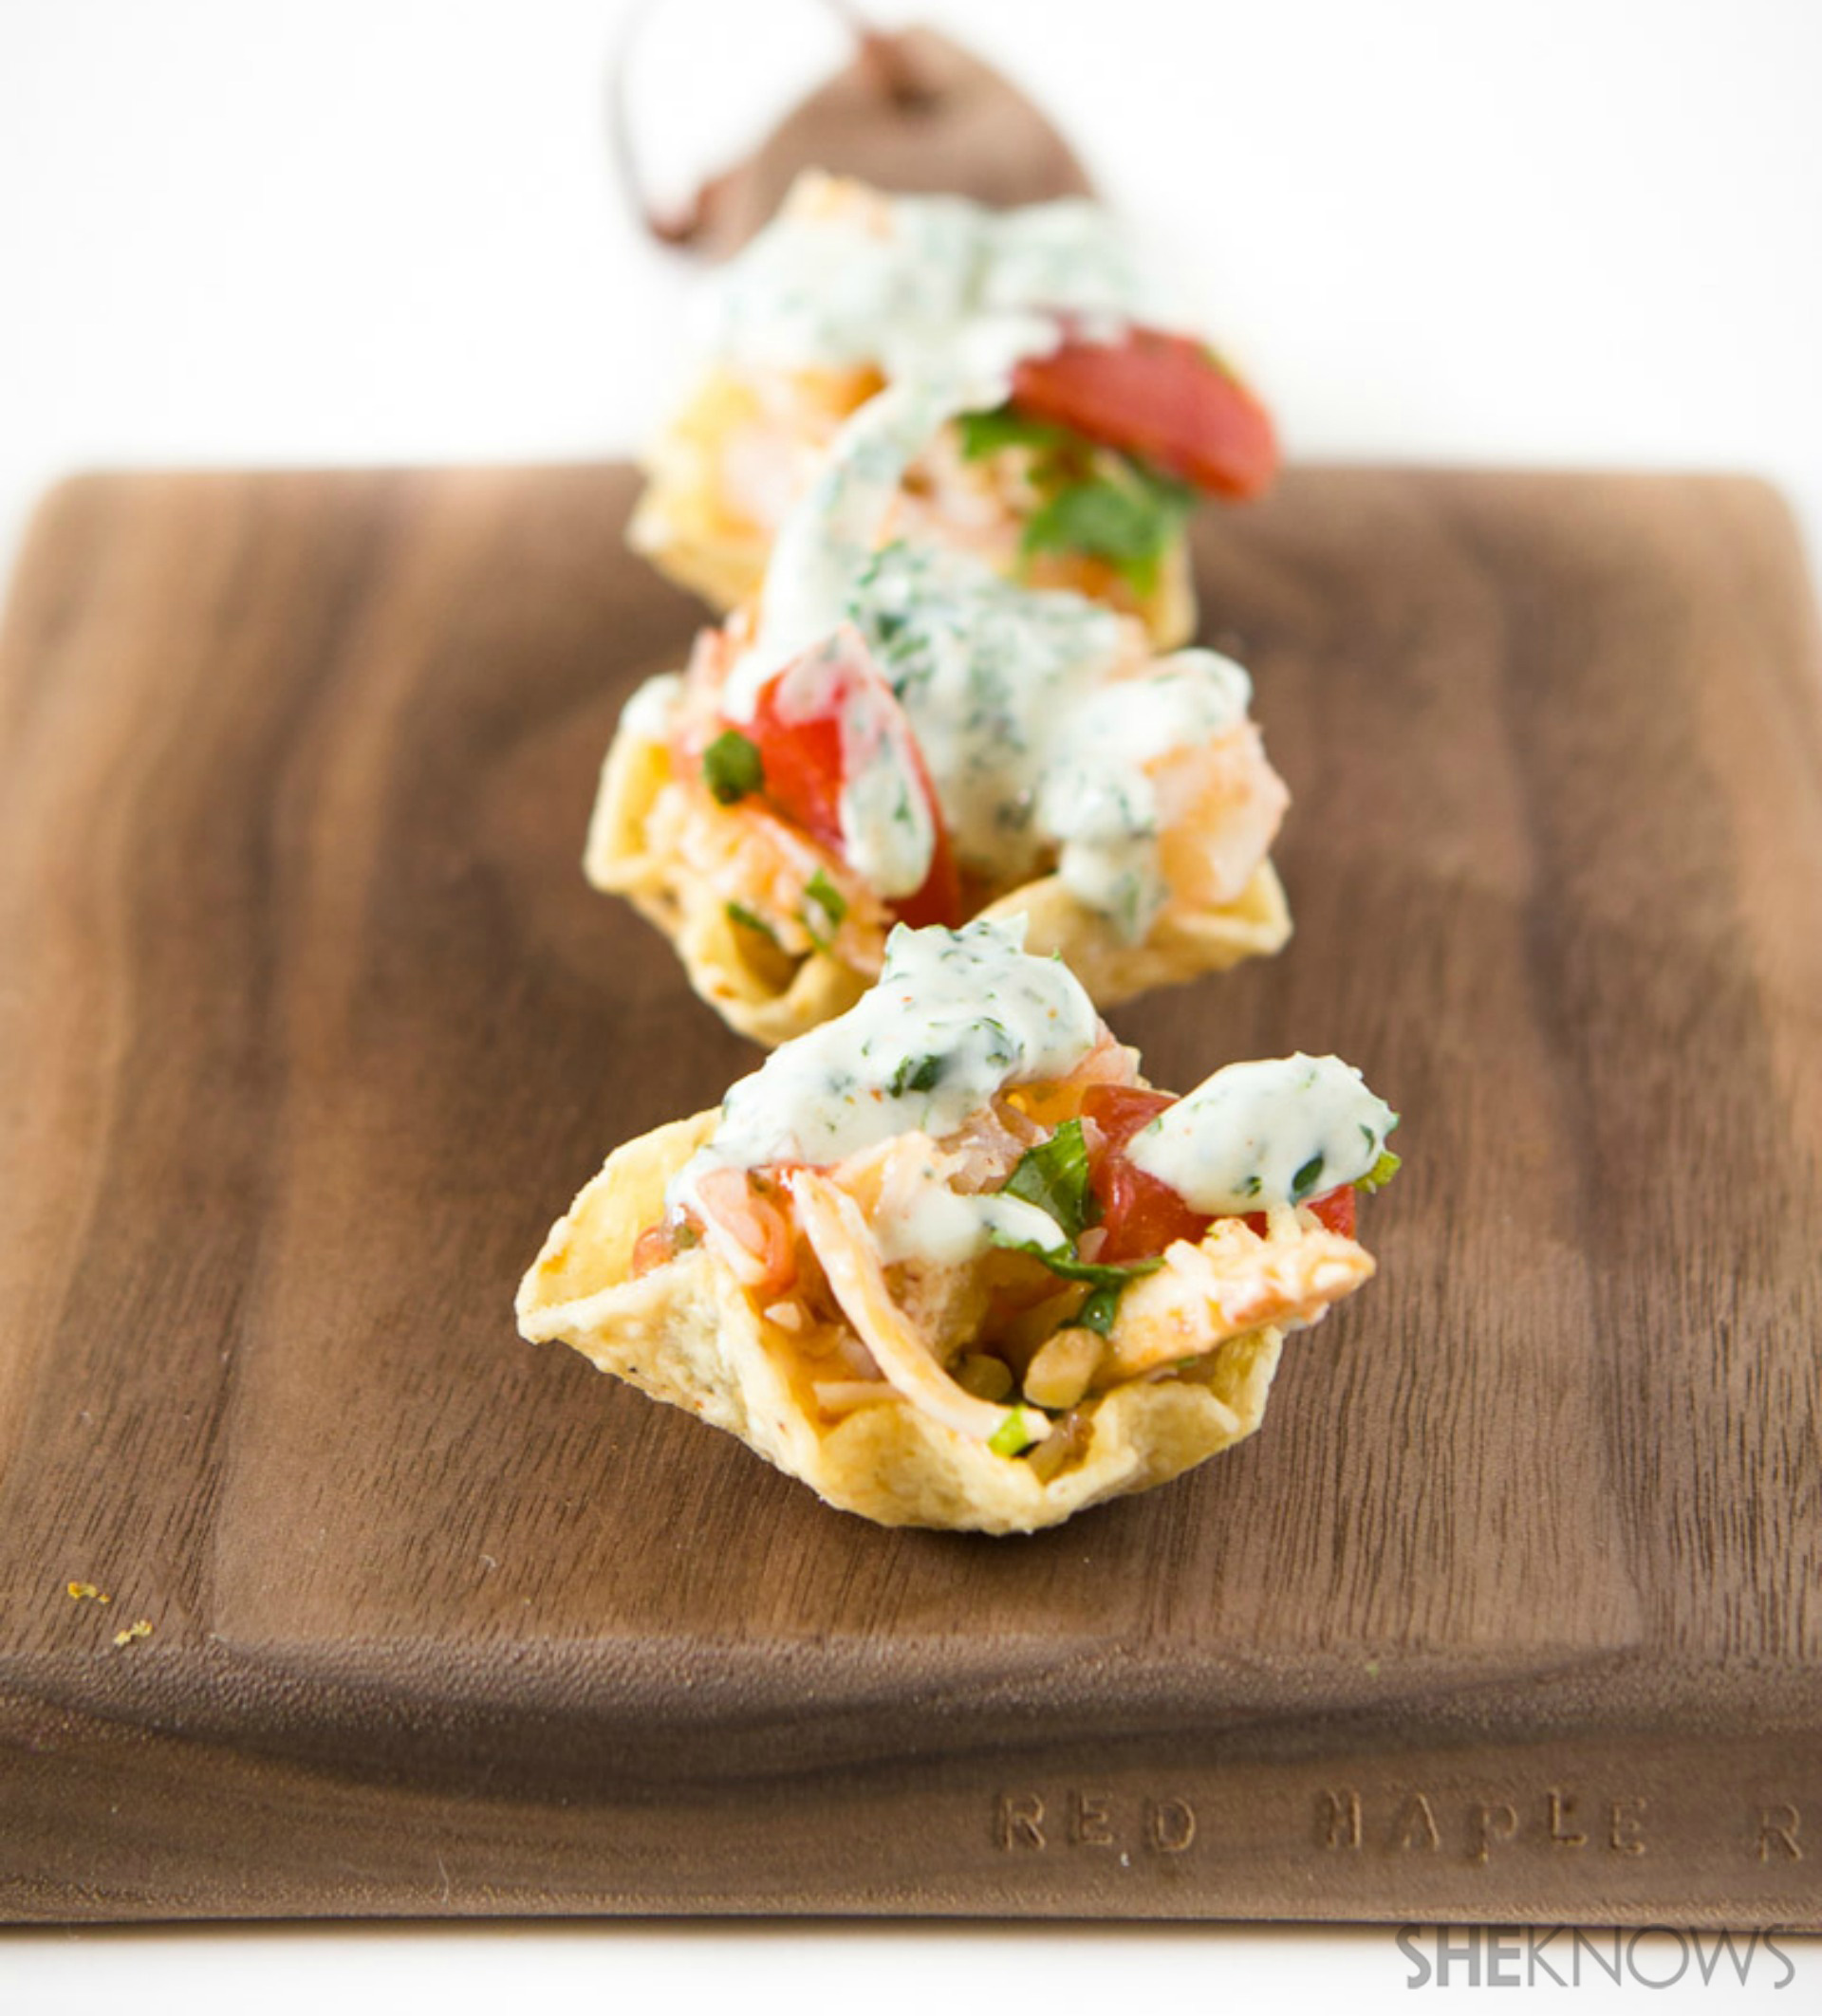 Shrimp and crab ceviche tostada bites